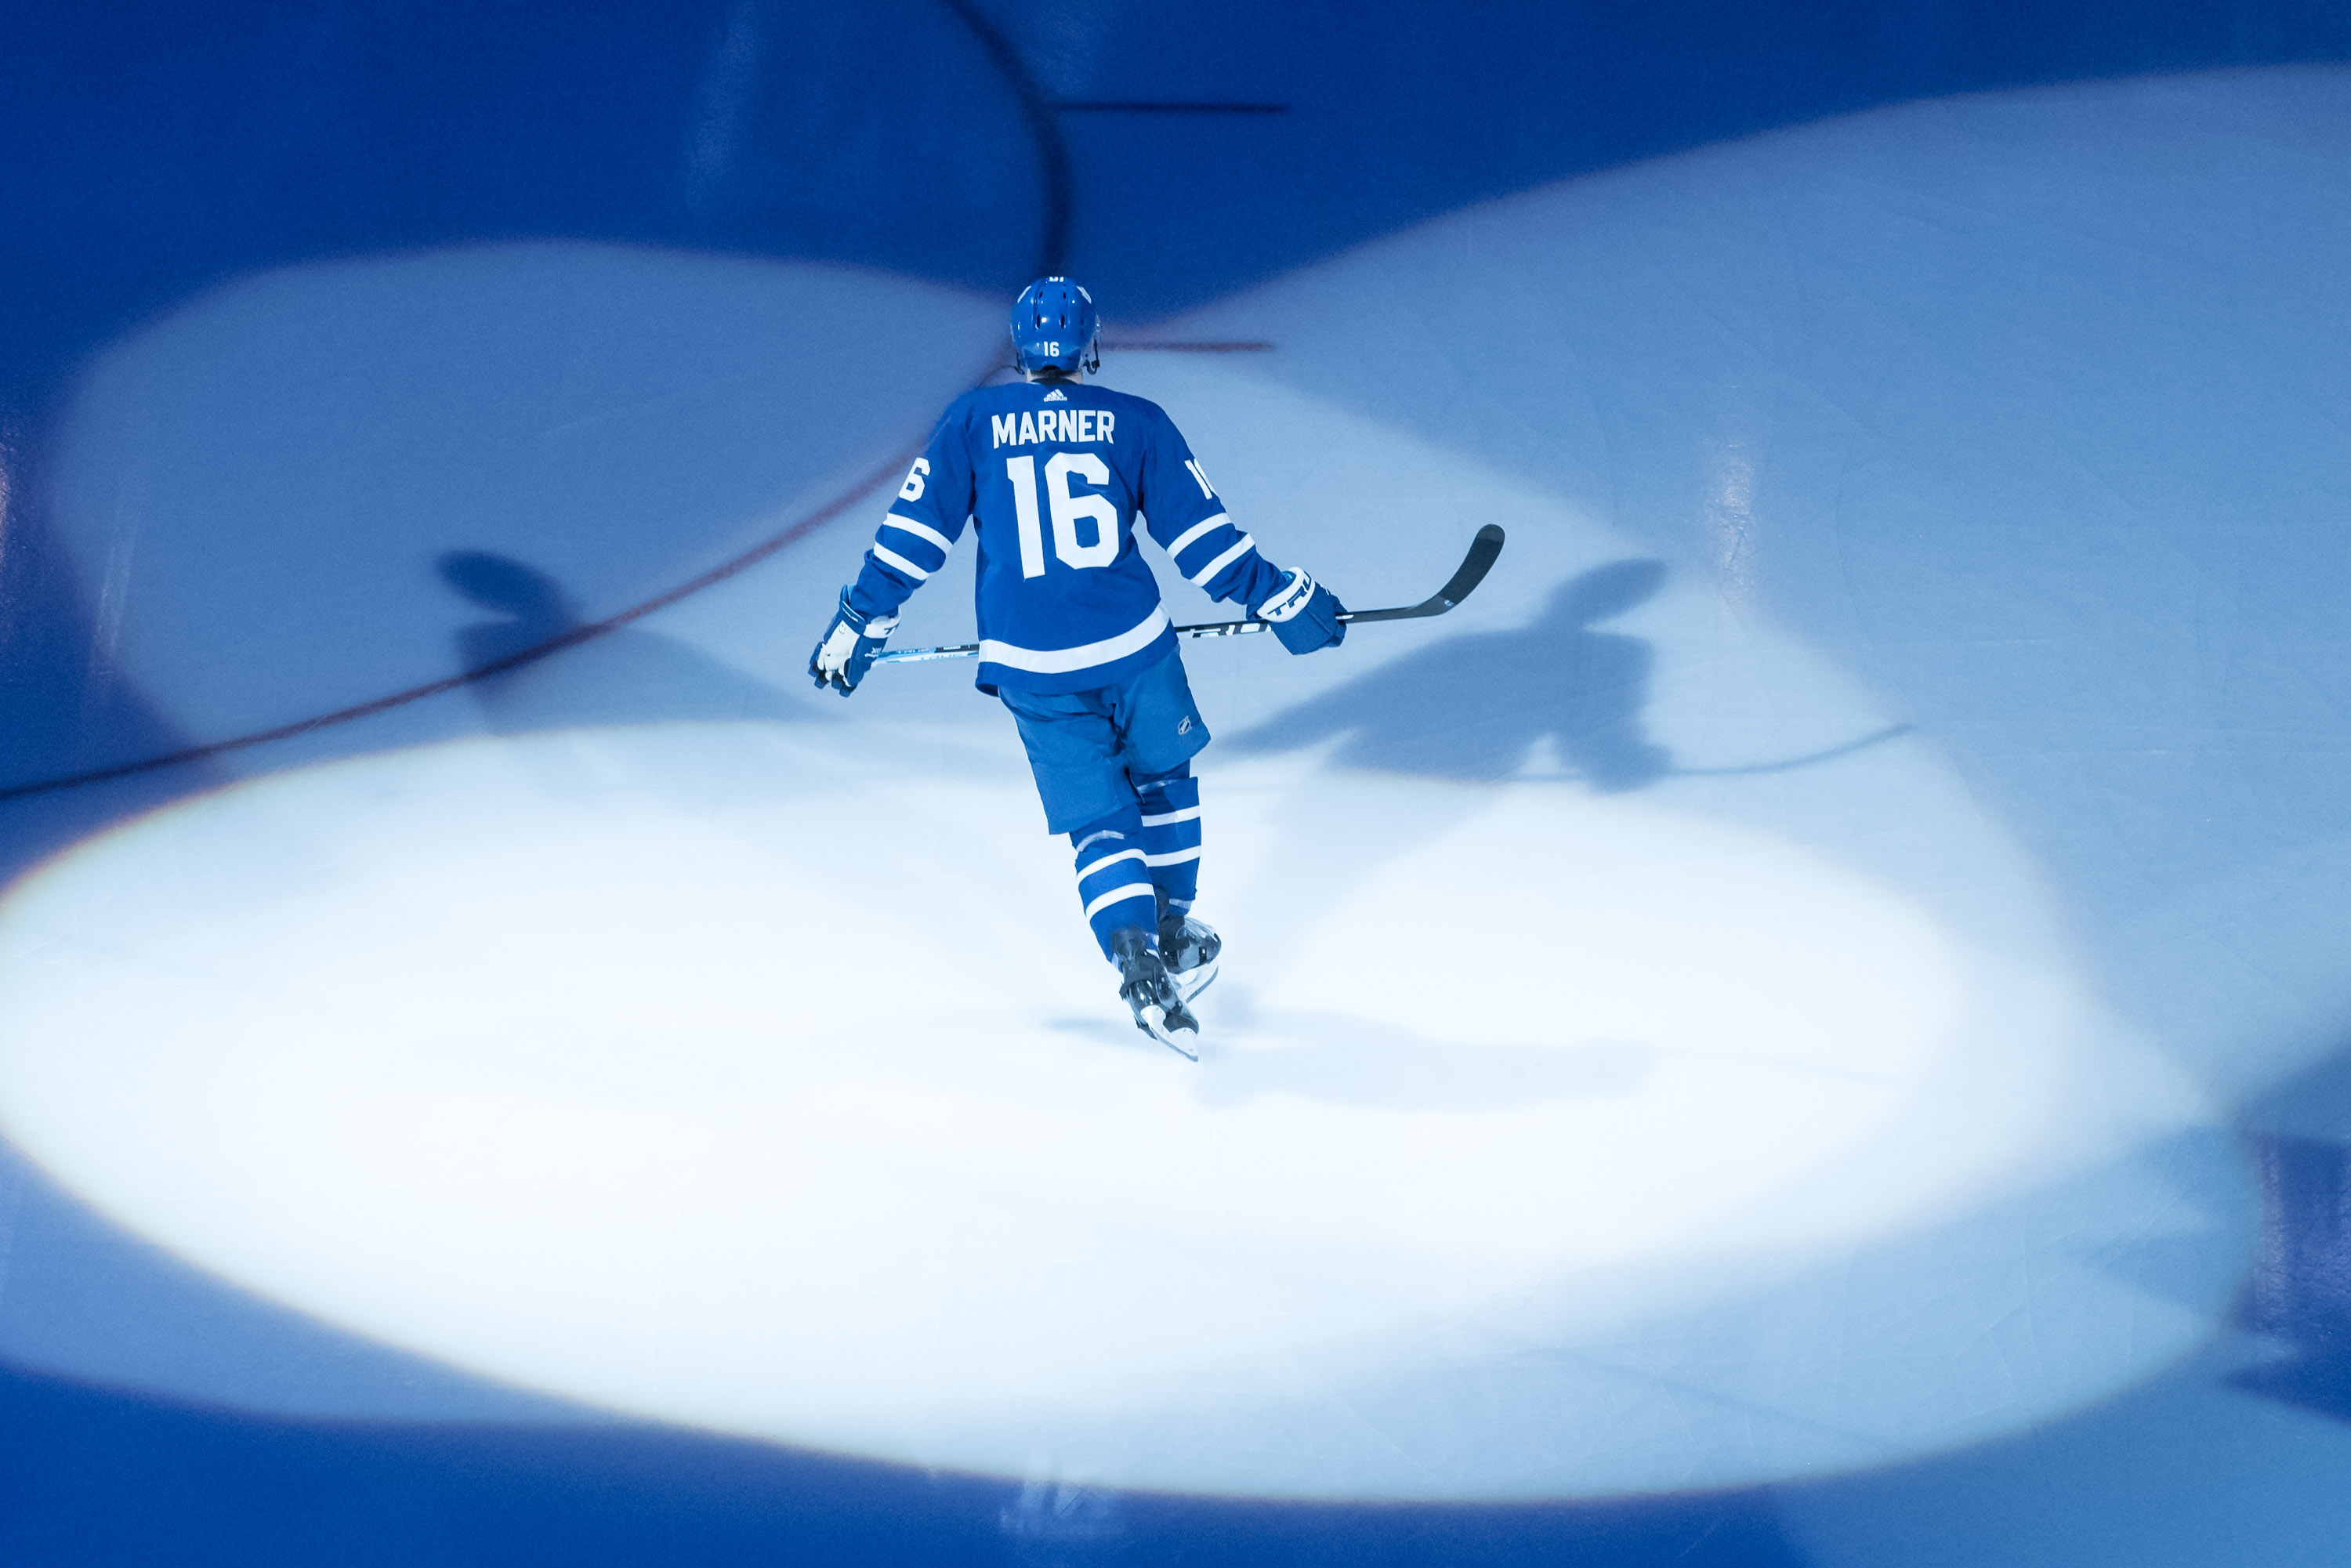 NHL: APR 21 Stanley Cup Playoffs First Round - Bruins at Maple Leafs